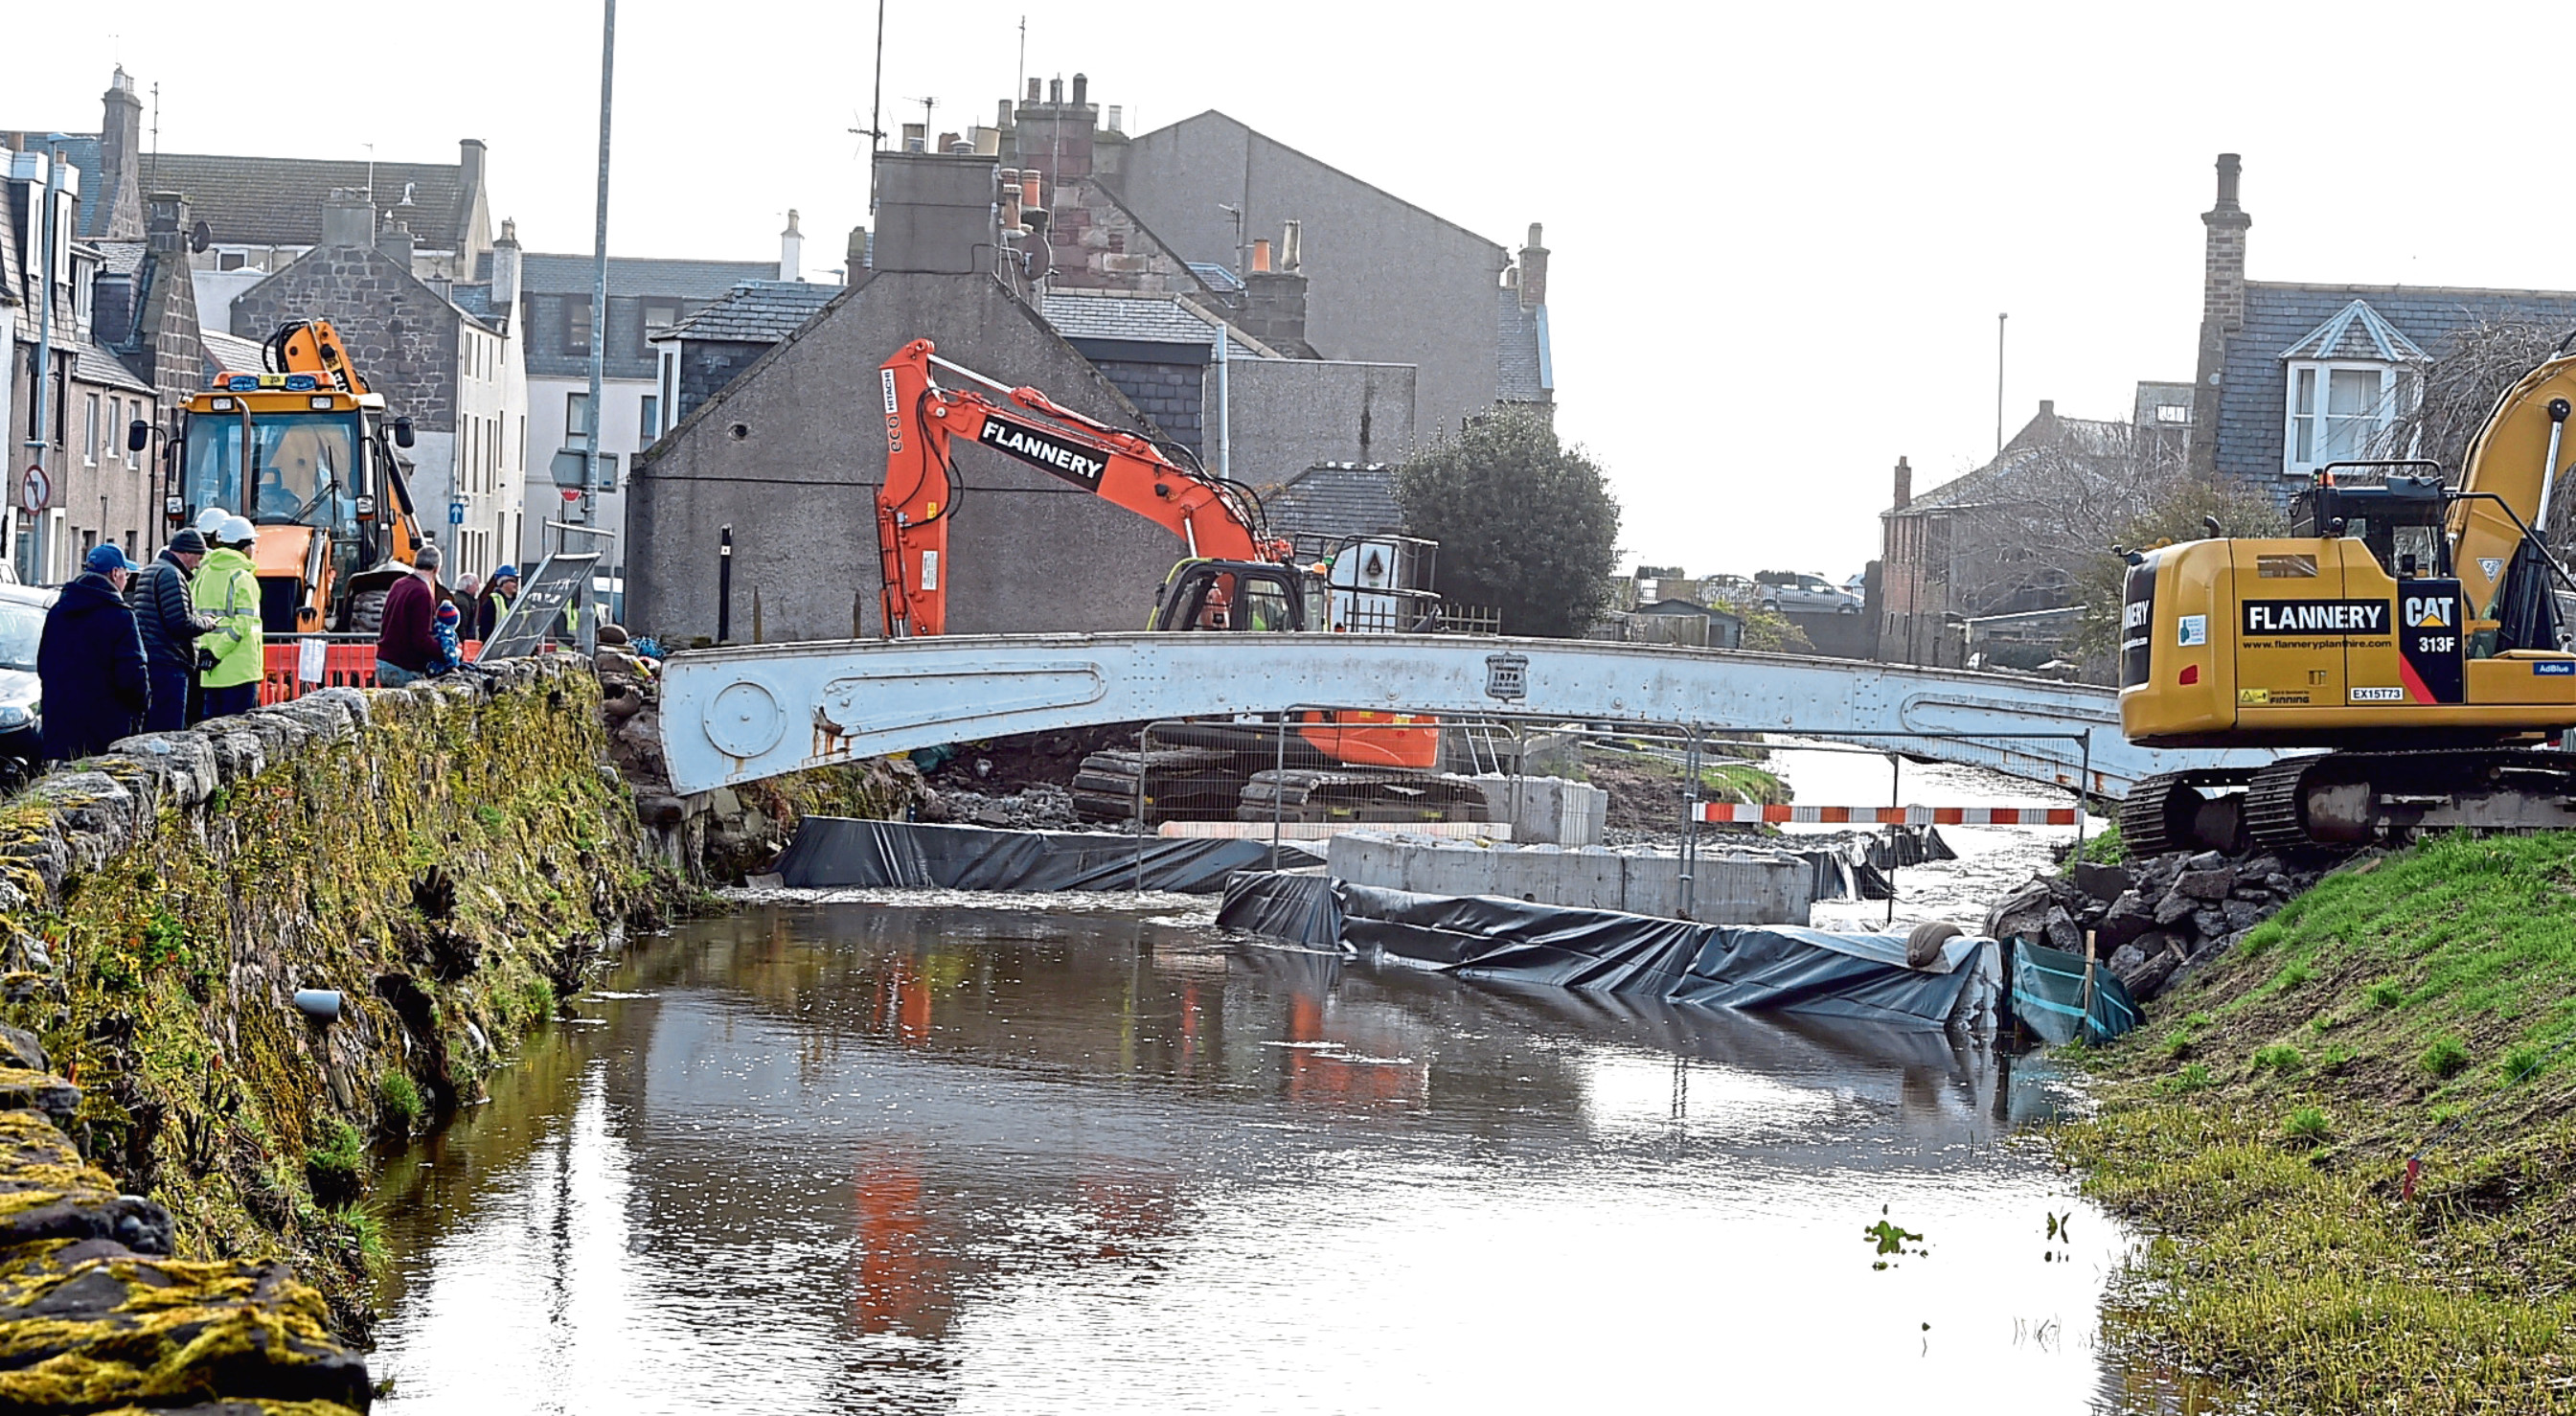 The White Bridge in Stonehaven being removed.